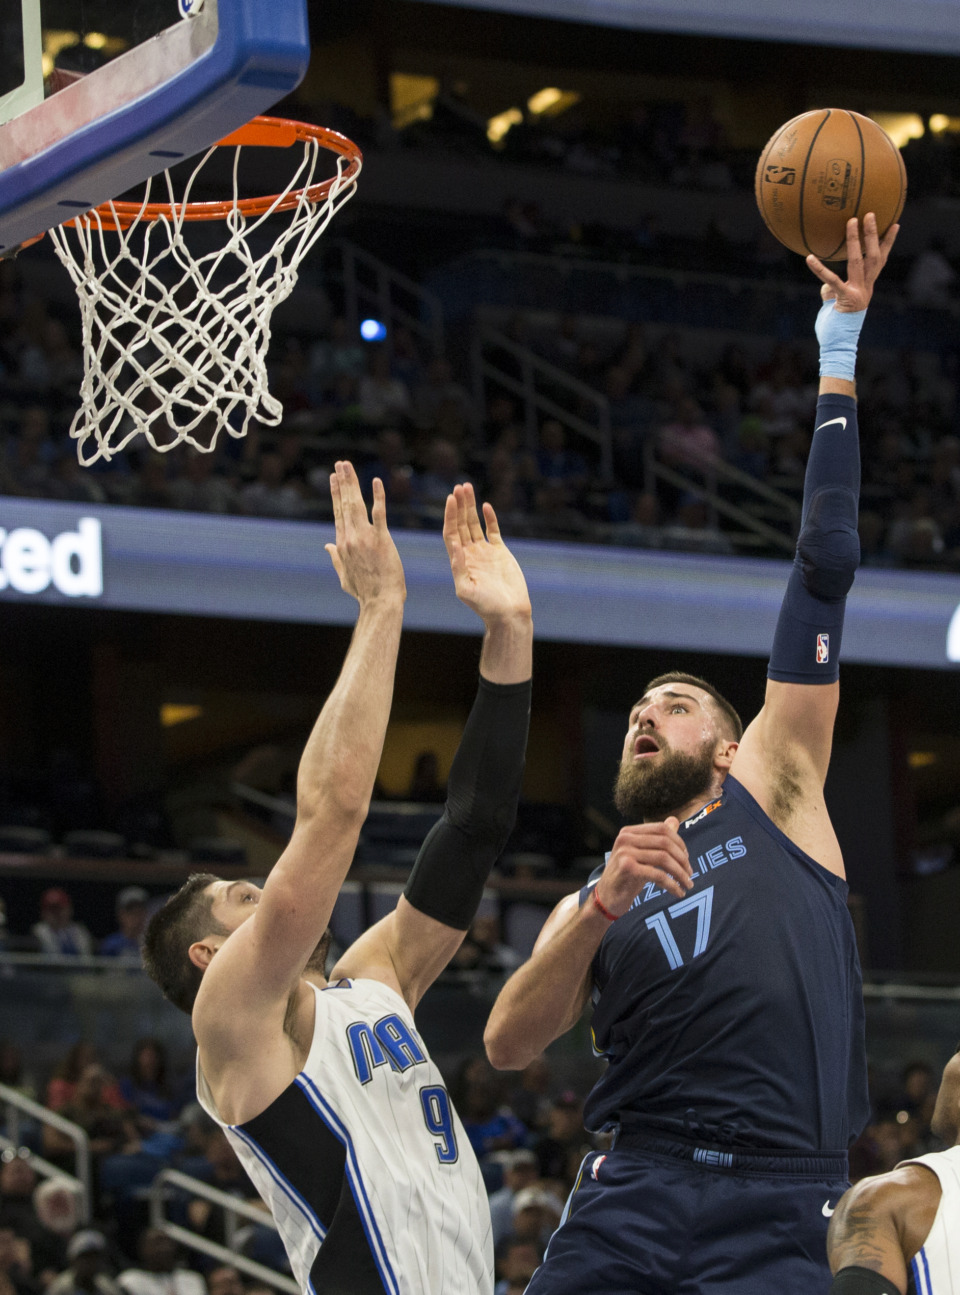 <span><strong>Memphis Grizzlies center Jonas Valanciunas (17) shoots over Orlando Magic center Nikola Vucevic (9) during the first half of an NBA basketball game in Orlando, Fla., Friday, March 22, 2019.</strong> (AP Photo/Willie J. Allen Jr.)</span>